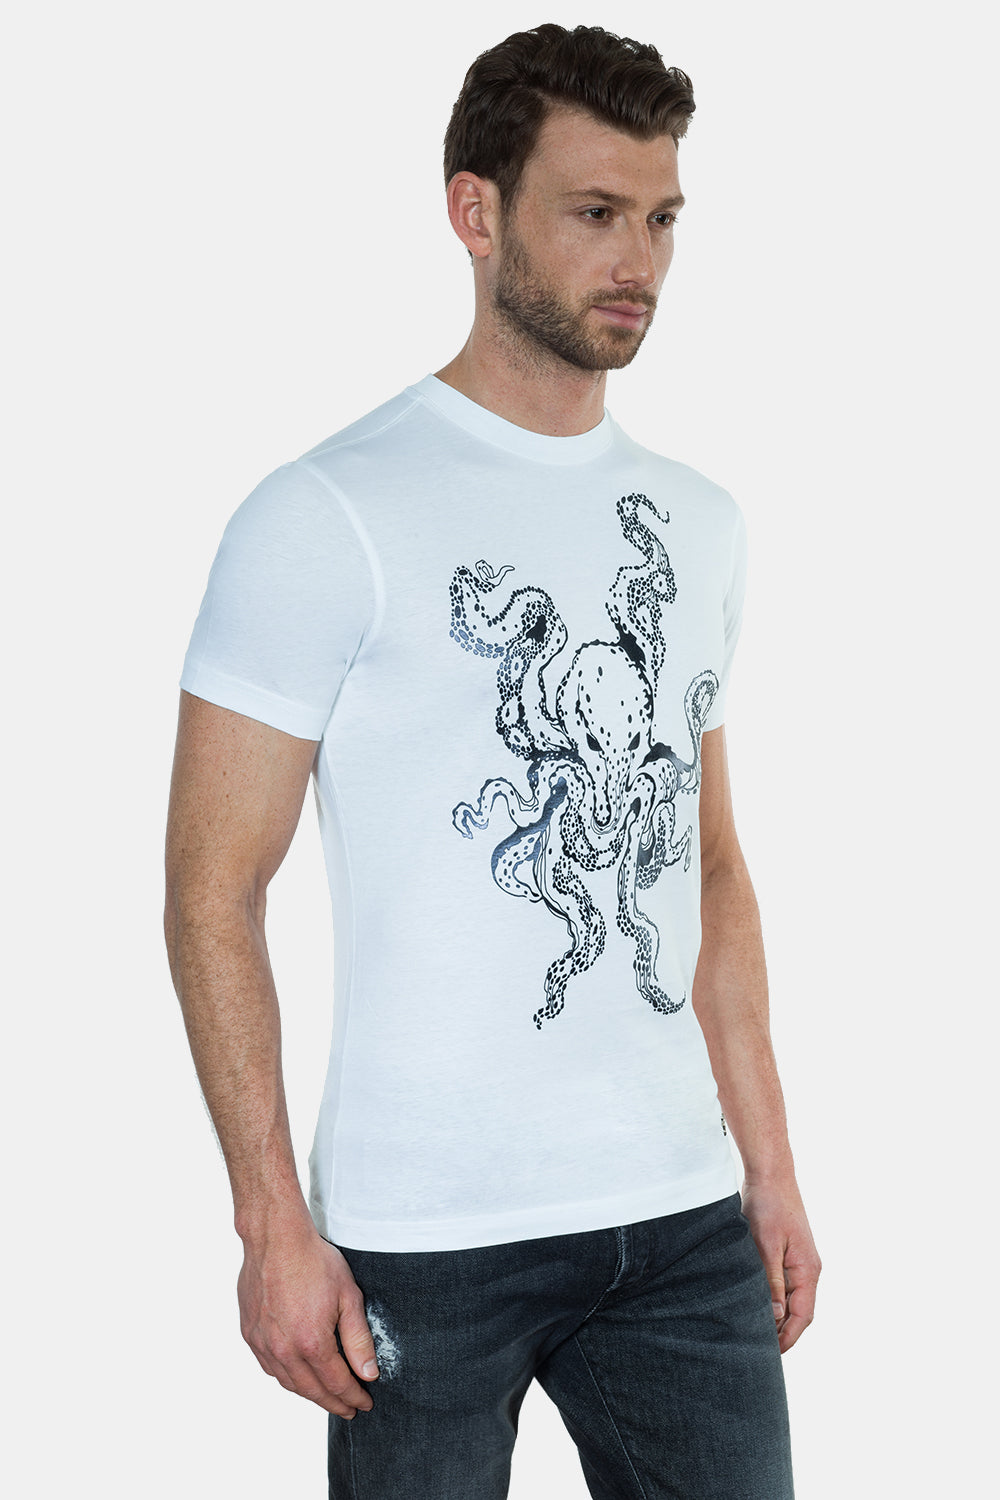 OCTOPUS 3D PRINTED T-SHIRT - DIMORAL OFFICIAL